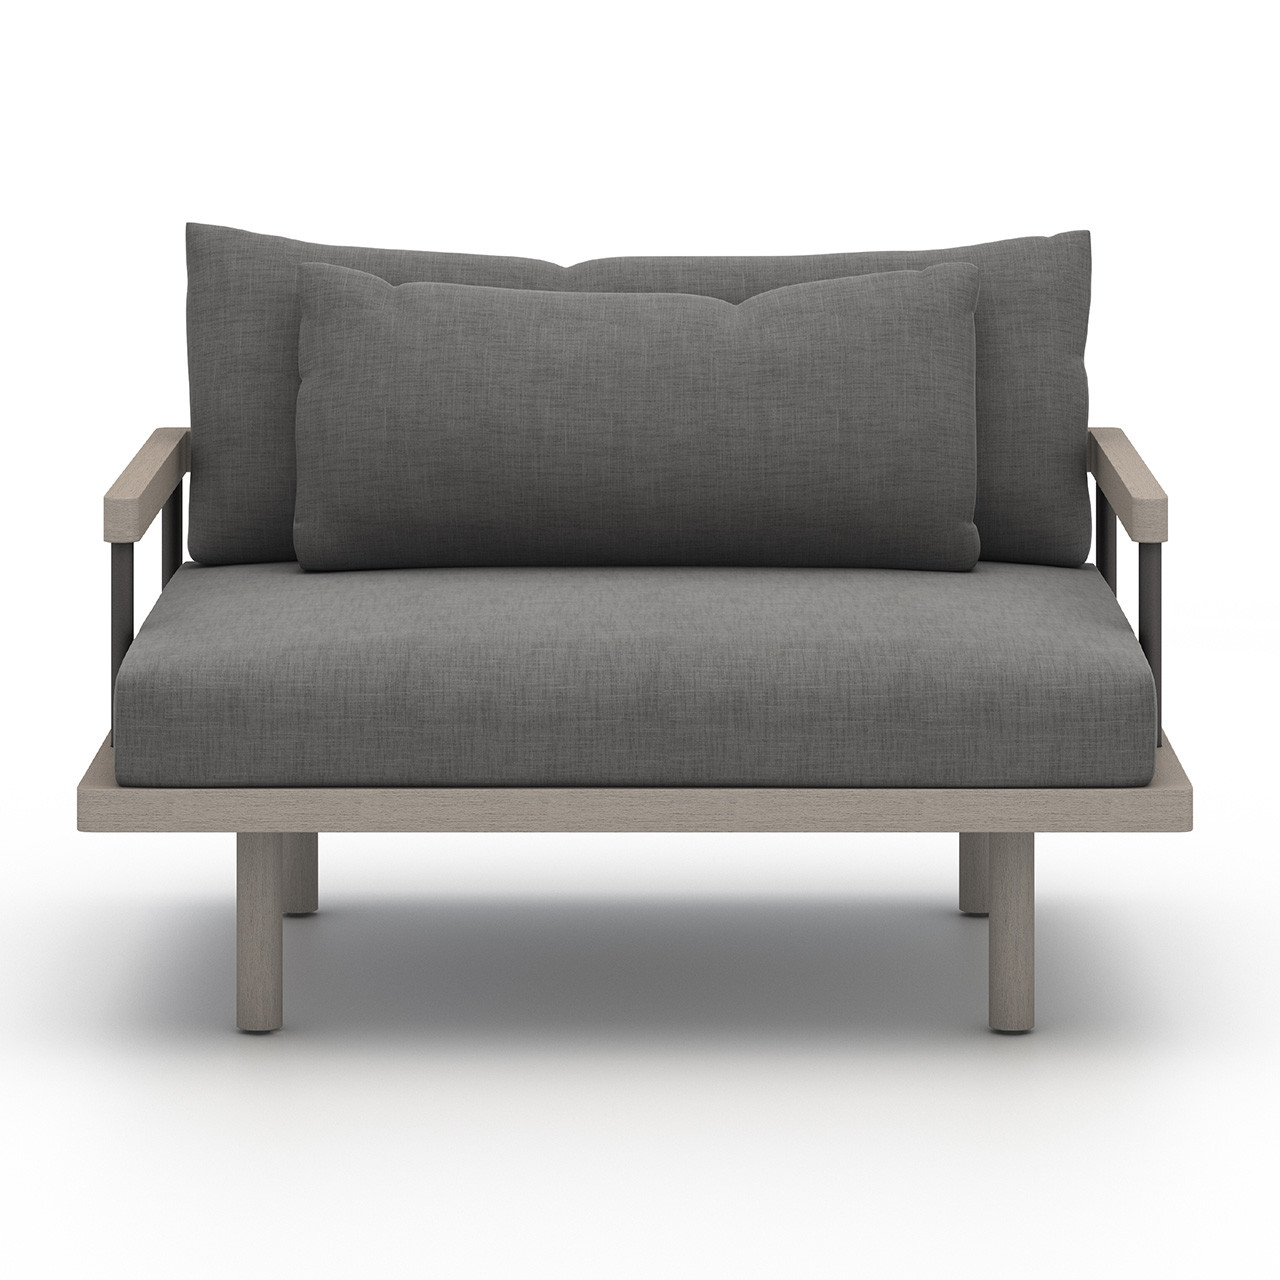 Nise Outdoor Lounge Chair - Weathered Grey